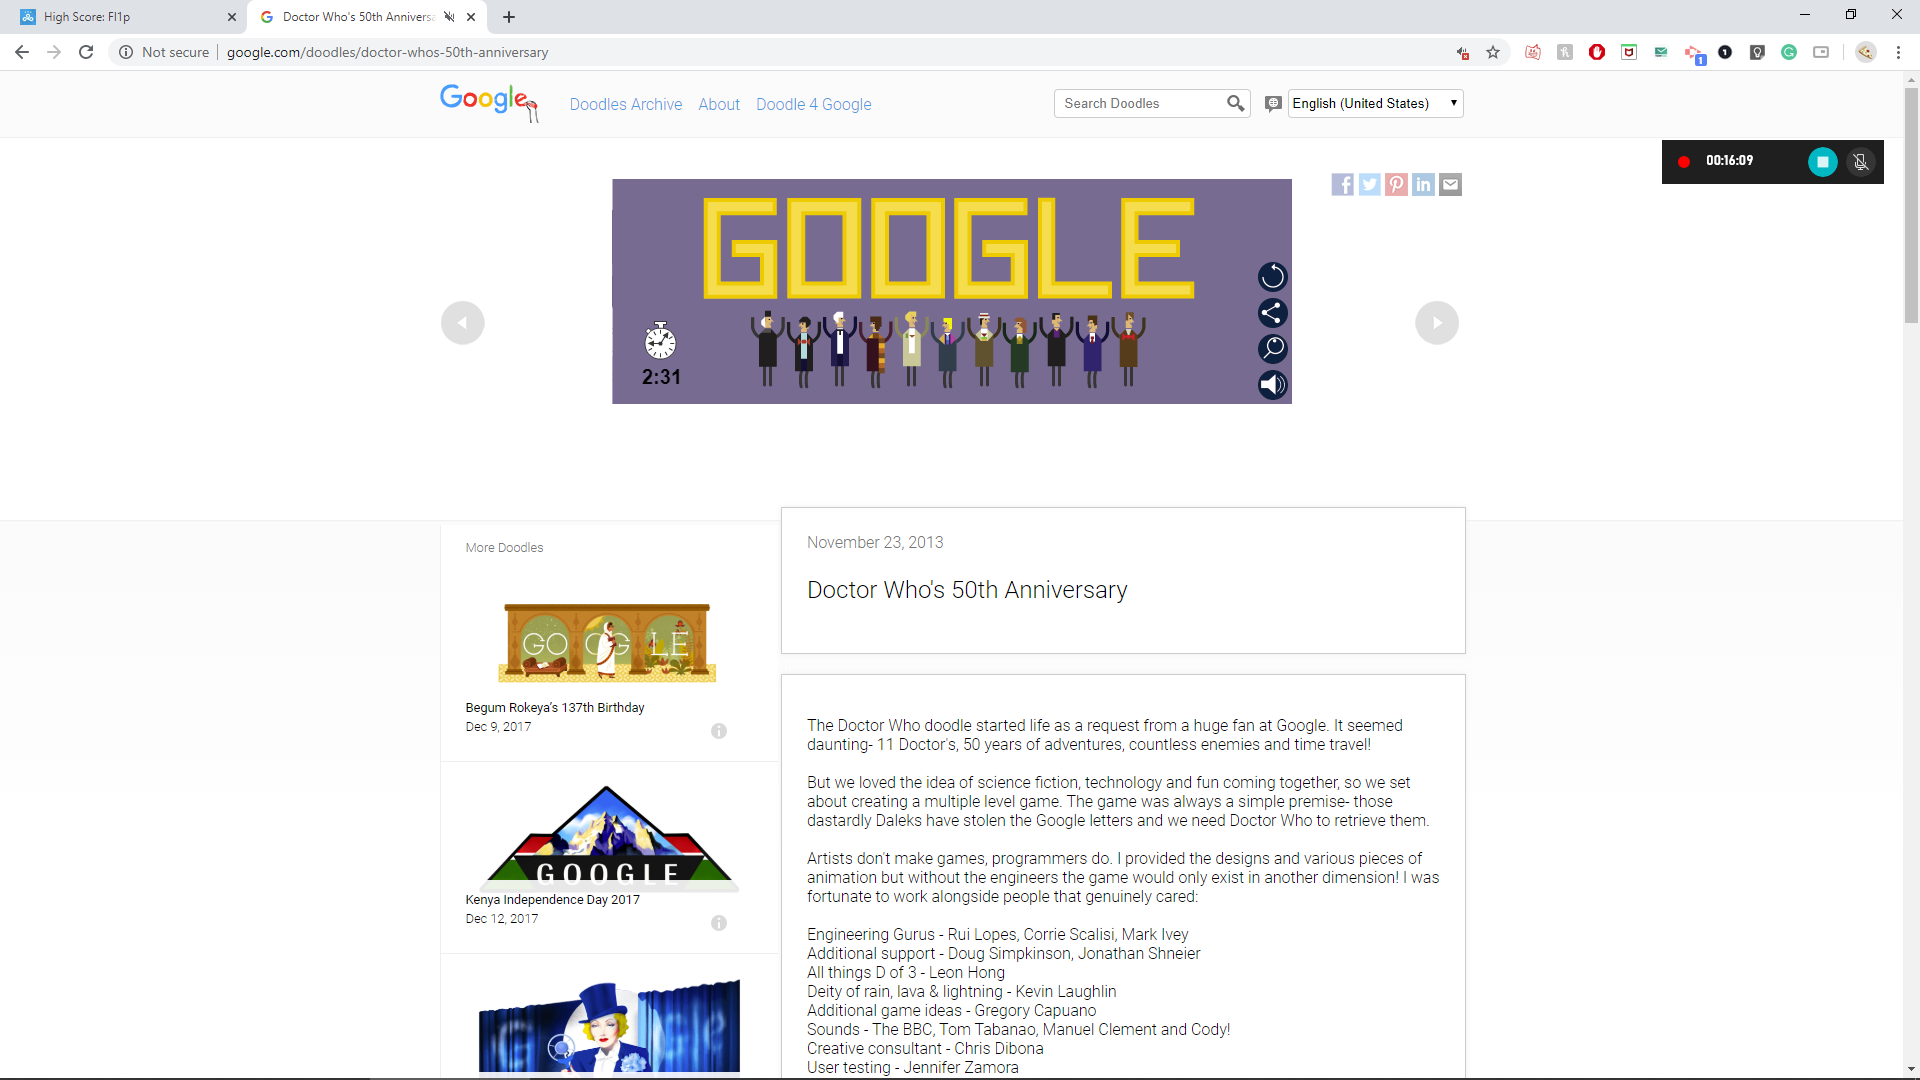 Fl1p: Google Doctor Who Doodle (Web) 0:02:31 points on 2020-04-22 01:08:46